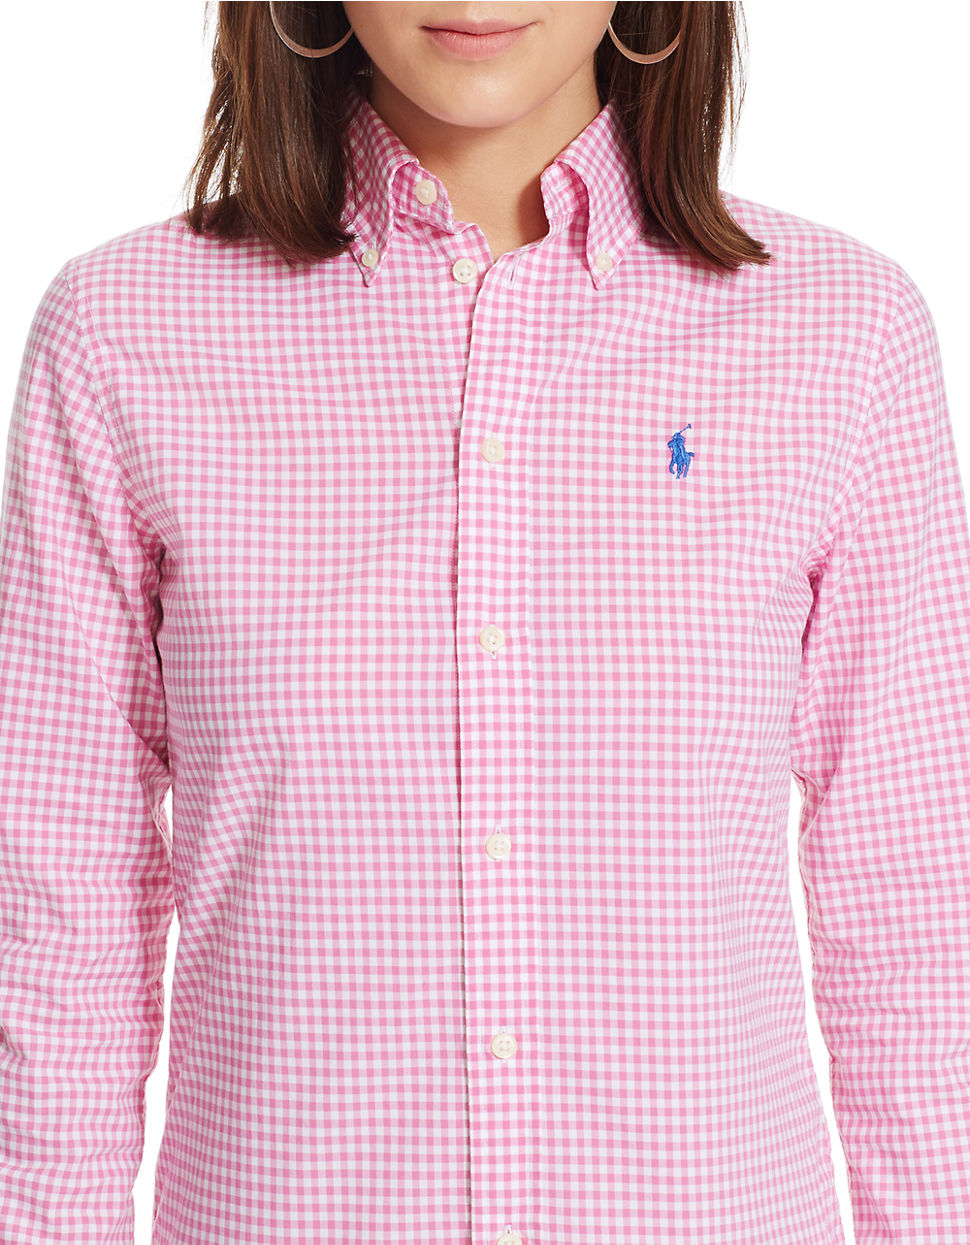 Polo ralph lauren custom fit gingham shirt in pink lyst for Pink gingham shirt ladies